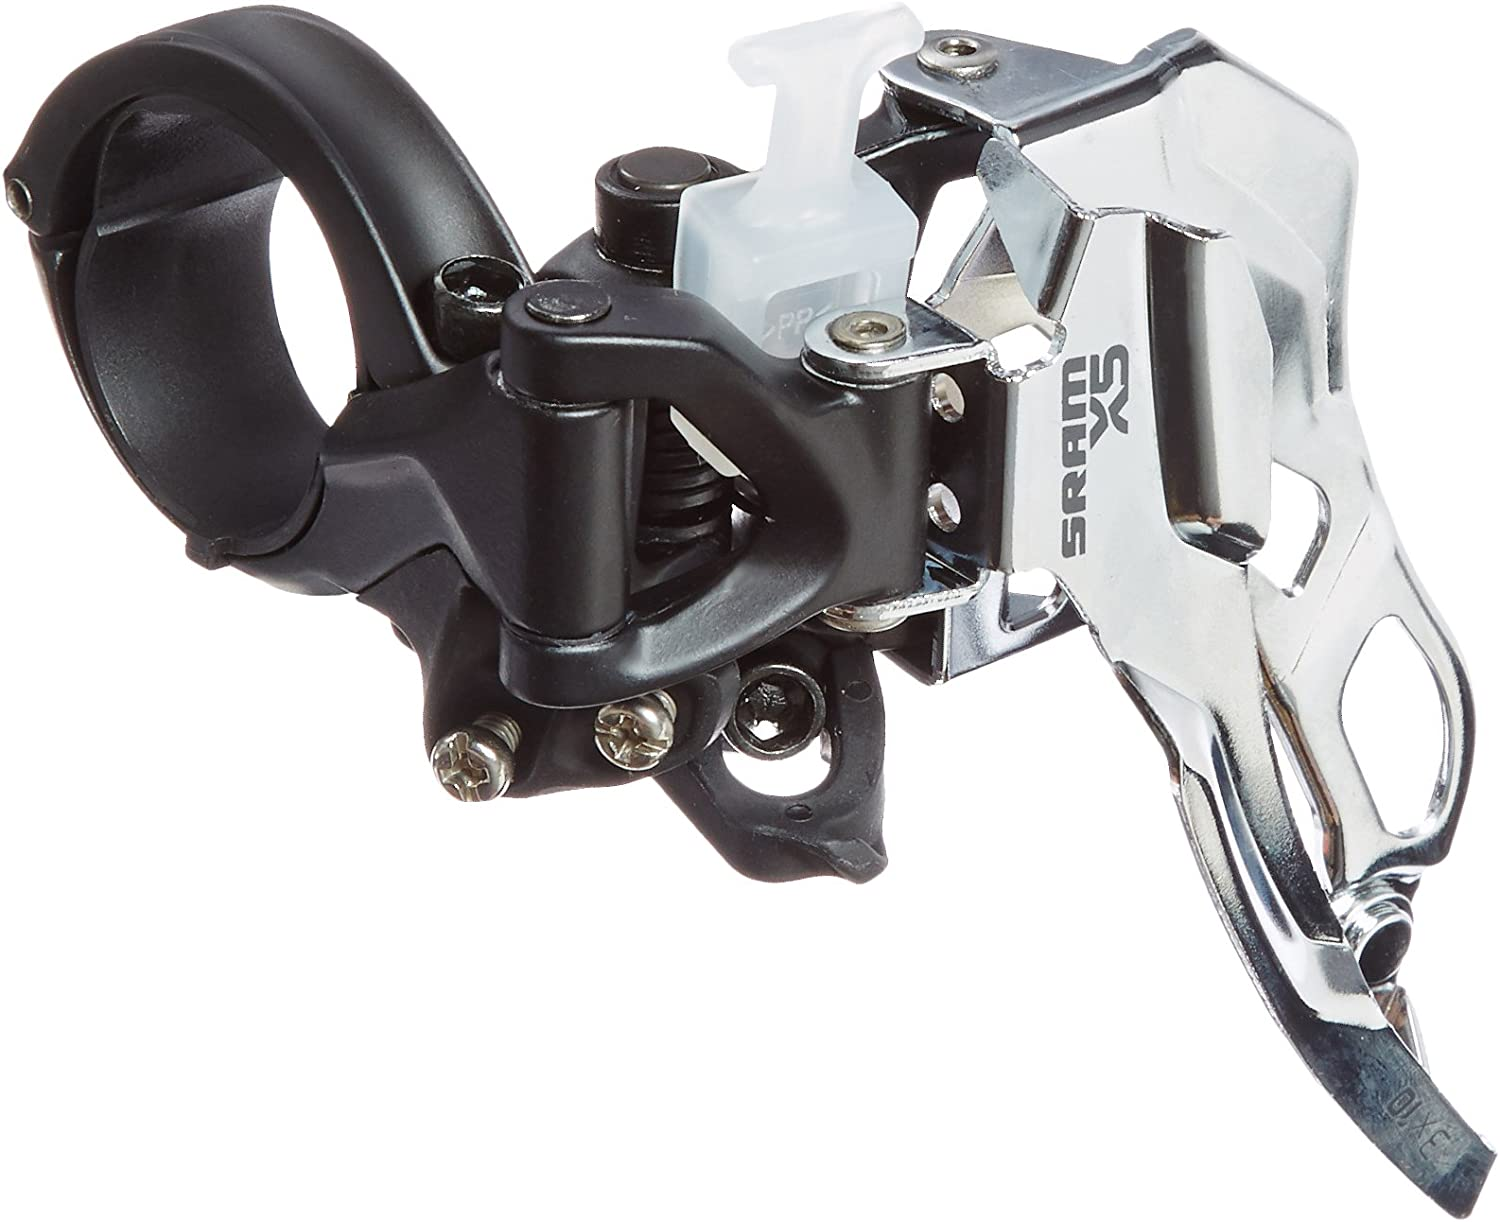 new  SRAM X7 low clamp Dual pull front derailleur 3x10 speed 34.9 clamp X.7